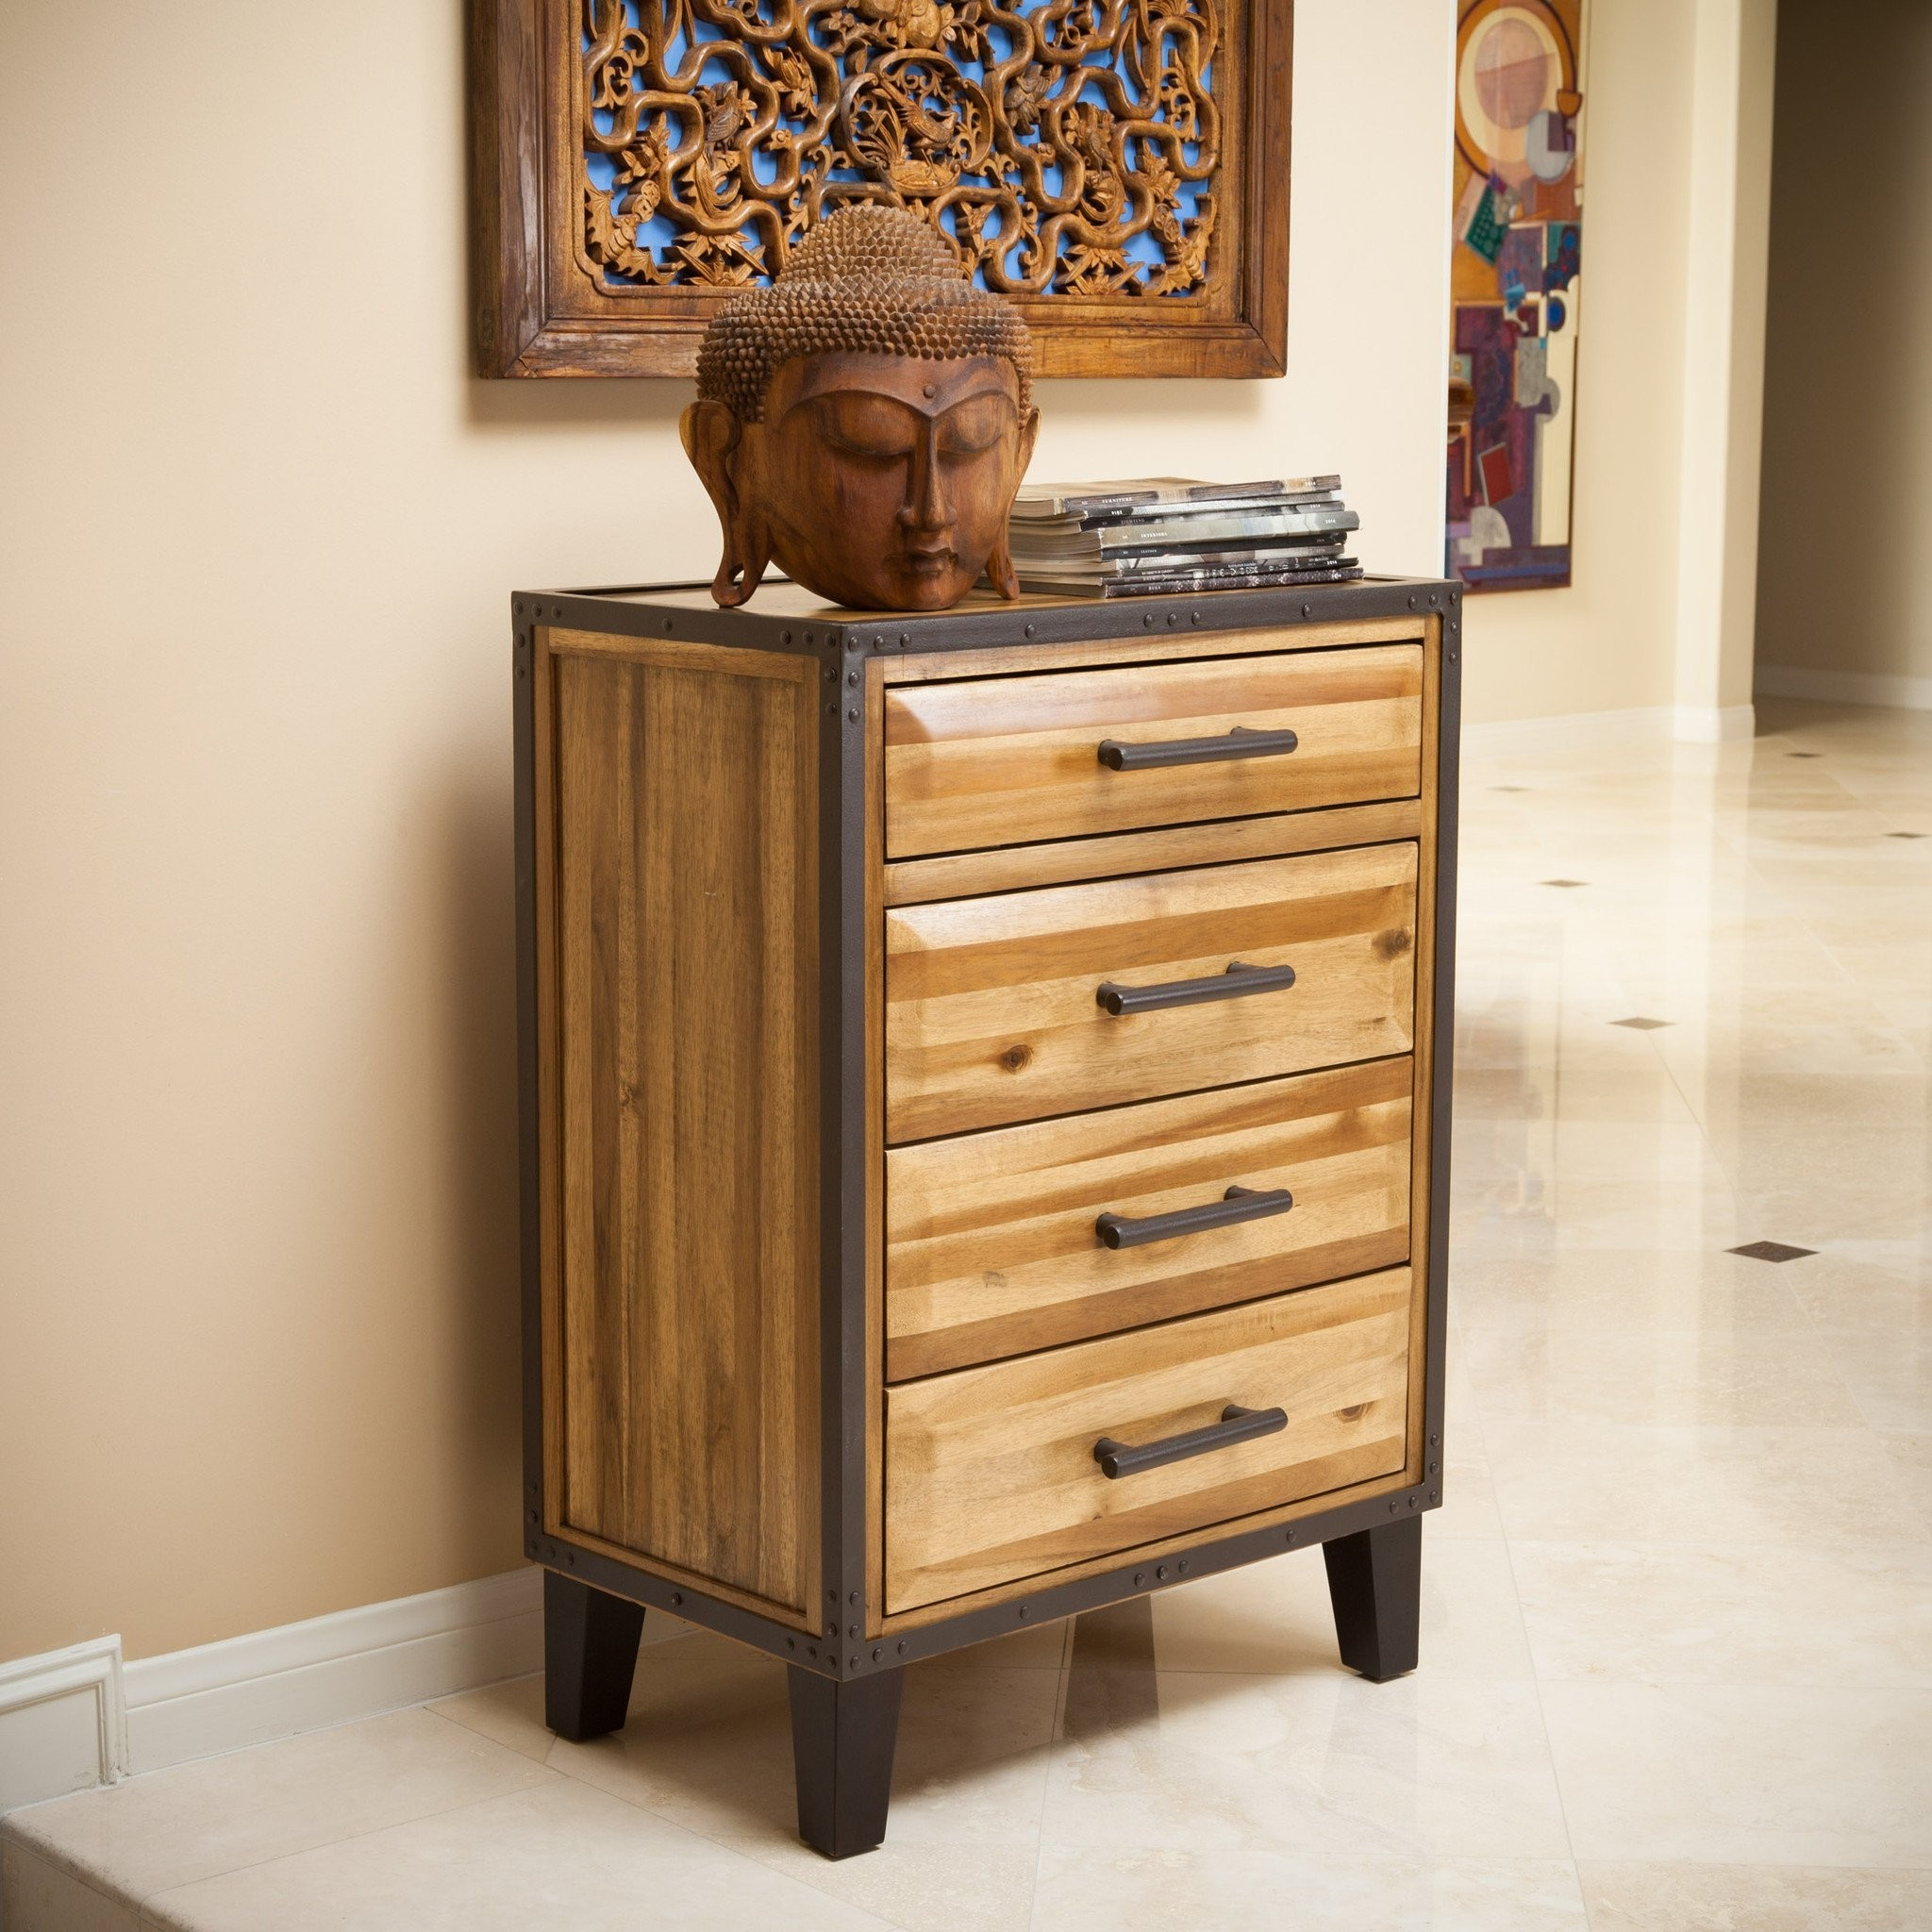 Glendora Natural Stain Solid Wood Four Drawer Stor...